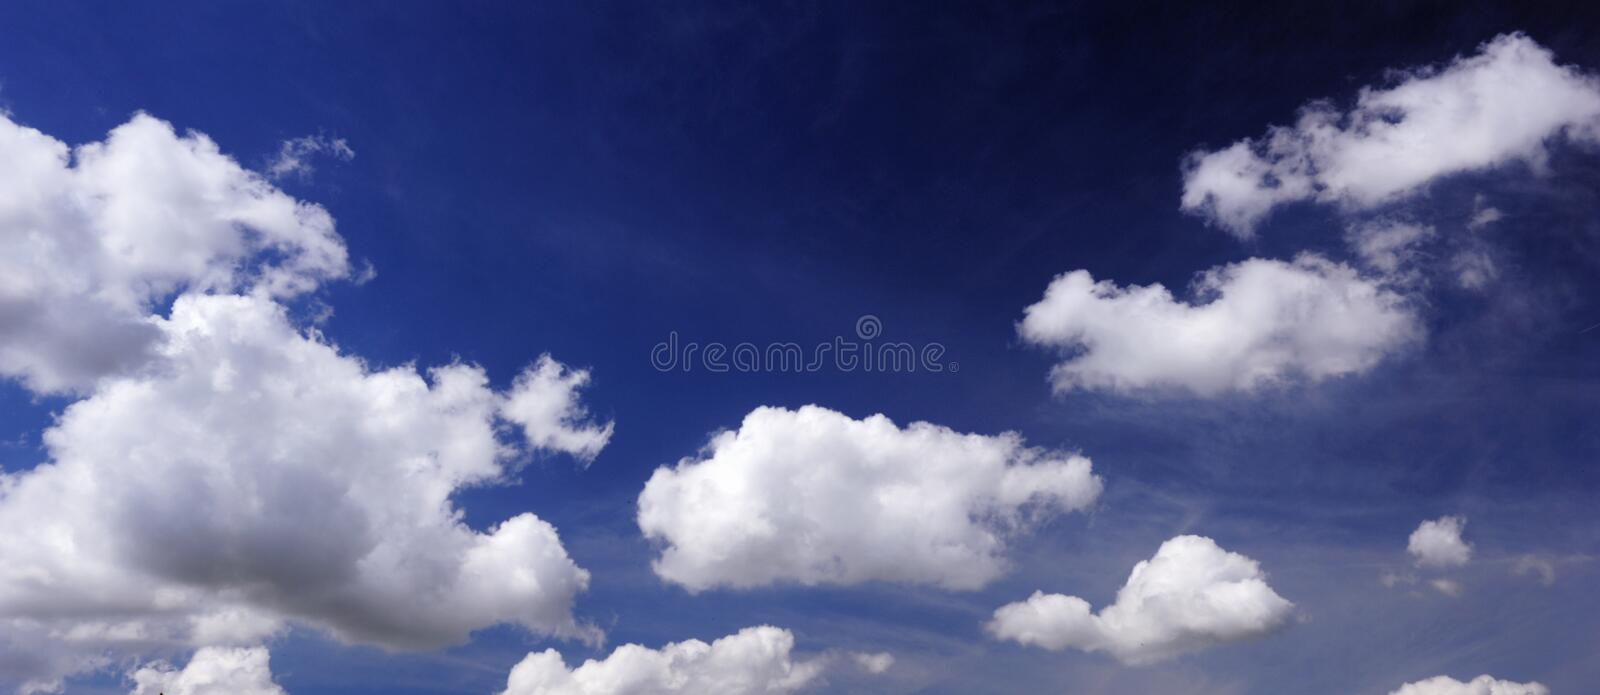 Super big clouds and sky in nature royalty free stock image